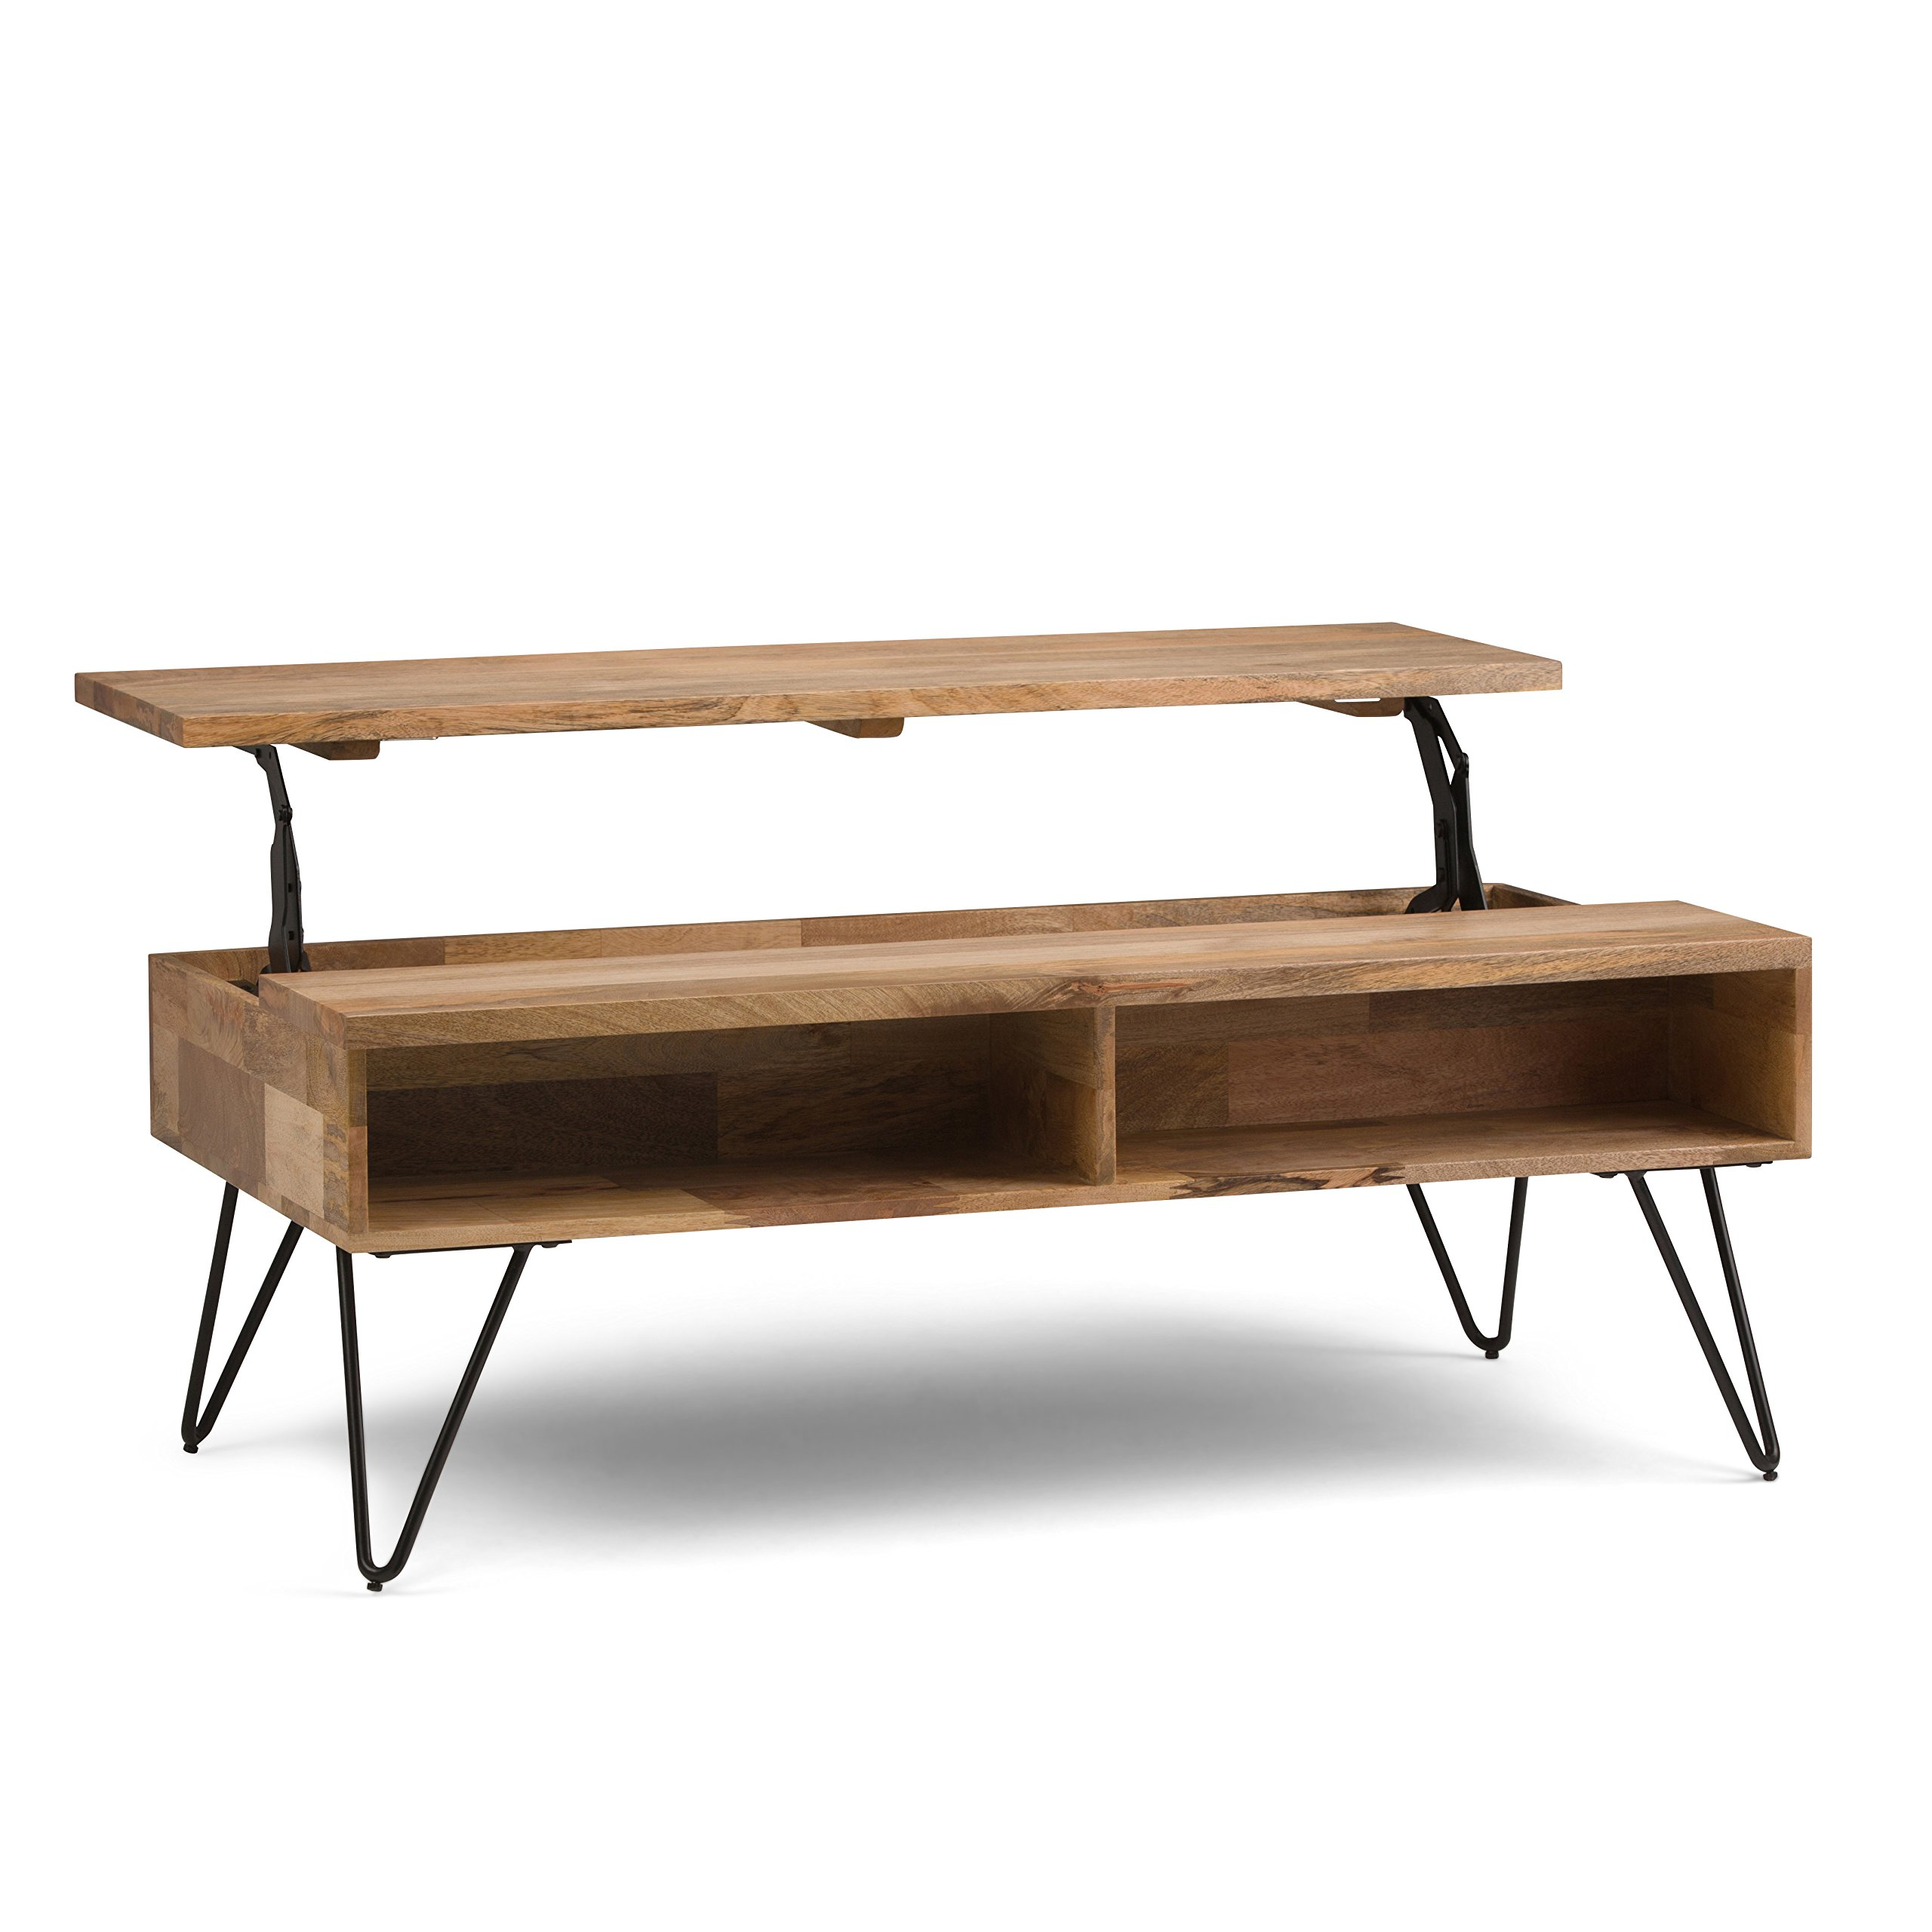 Simpli Home AXCHUN-01 Hunter Solid Mango Wood and Metal 48 inch Wide Mid Century Modern Lift Top Coffee Table in Natural by Simpli Home